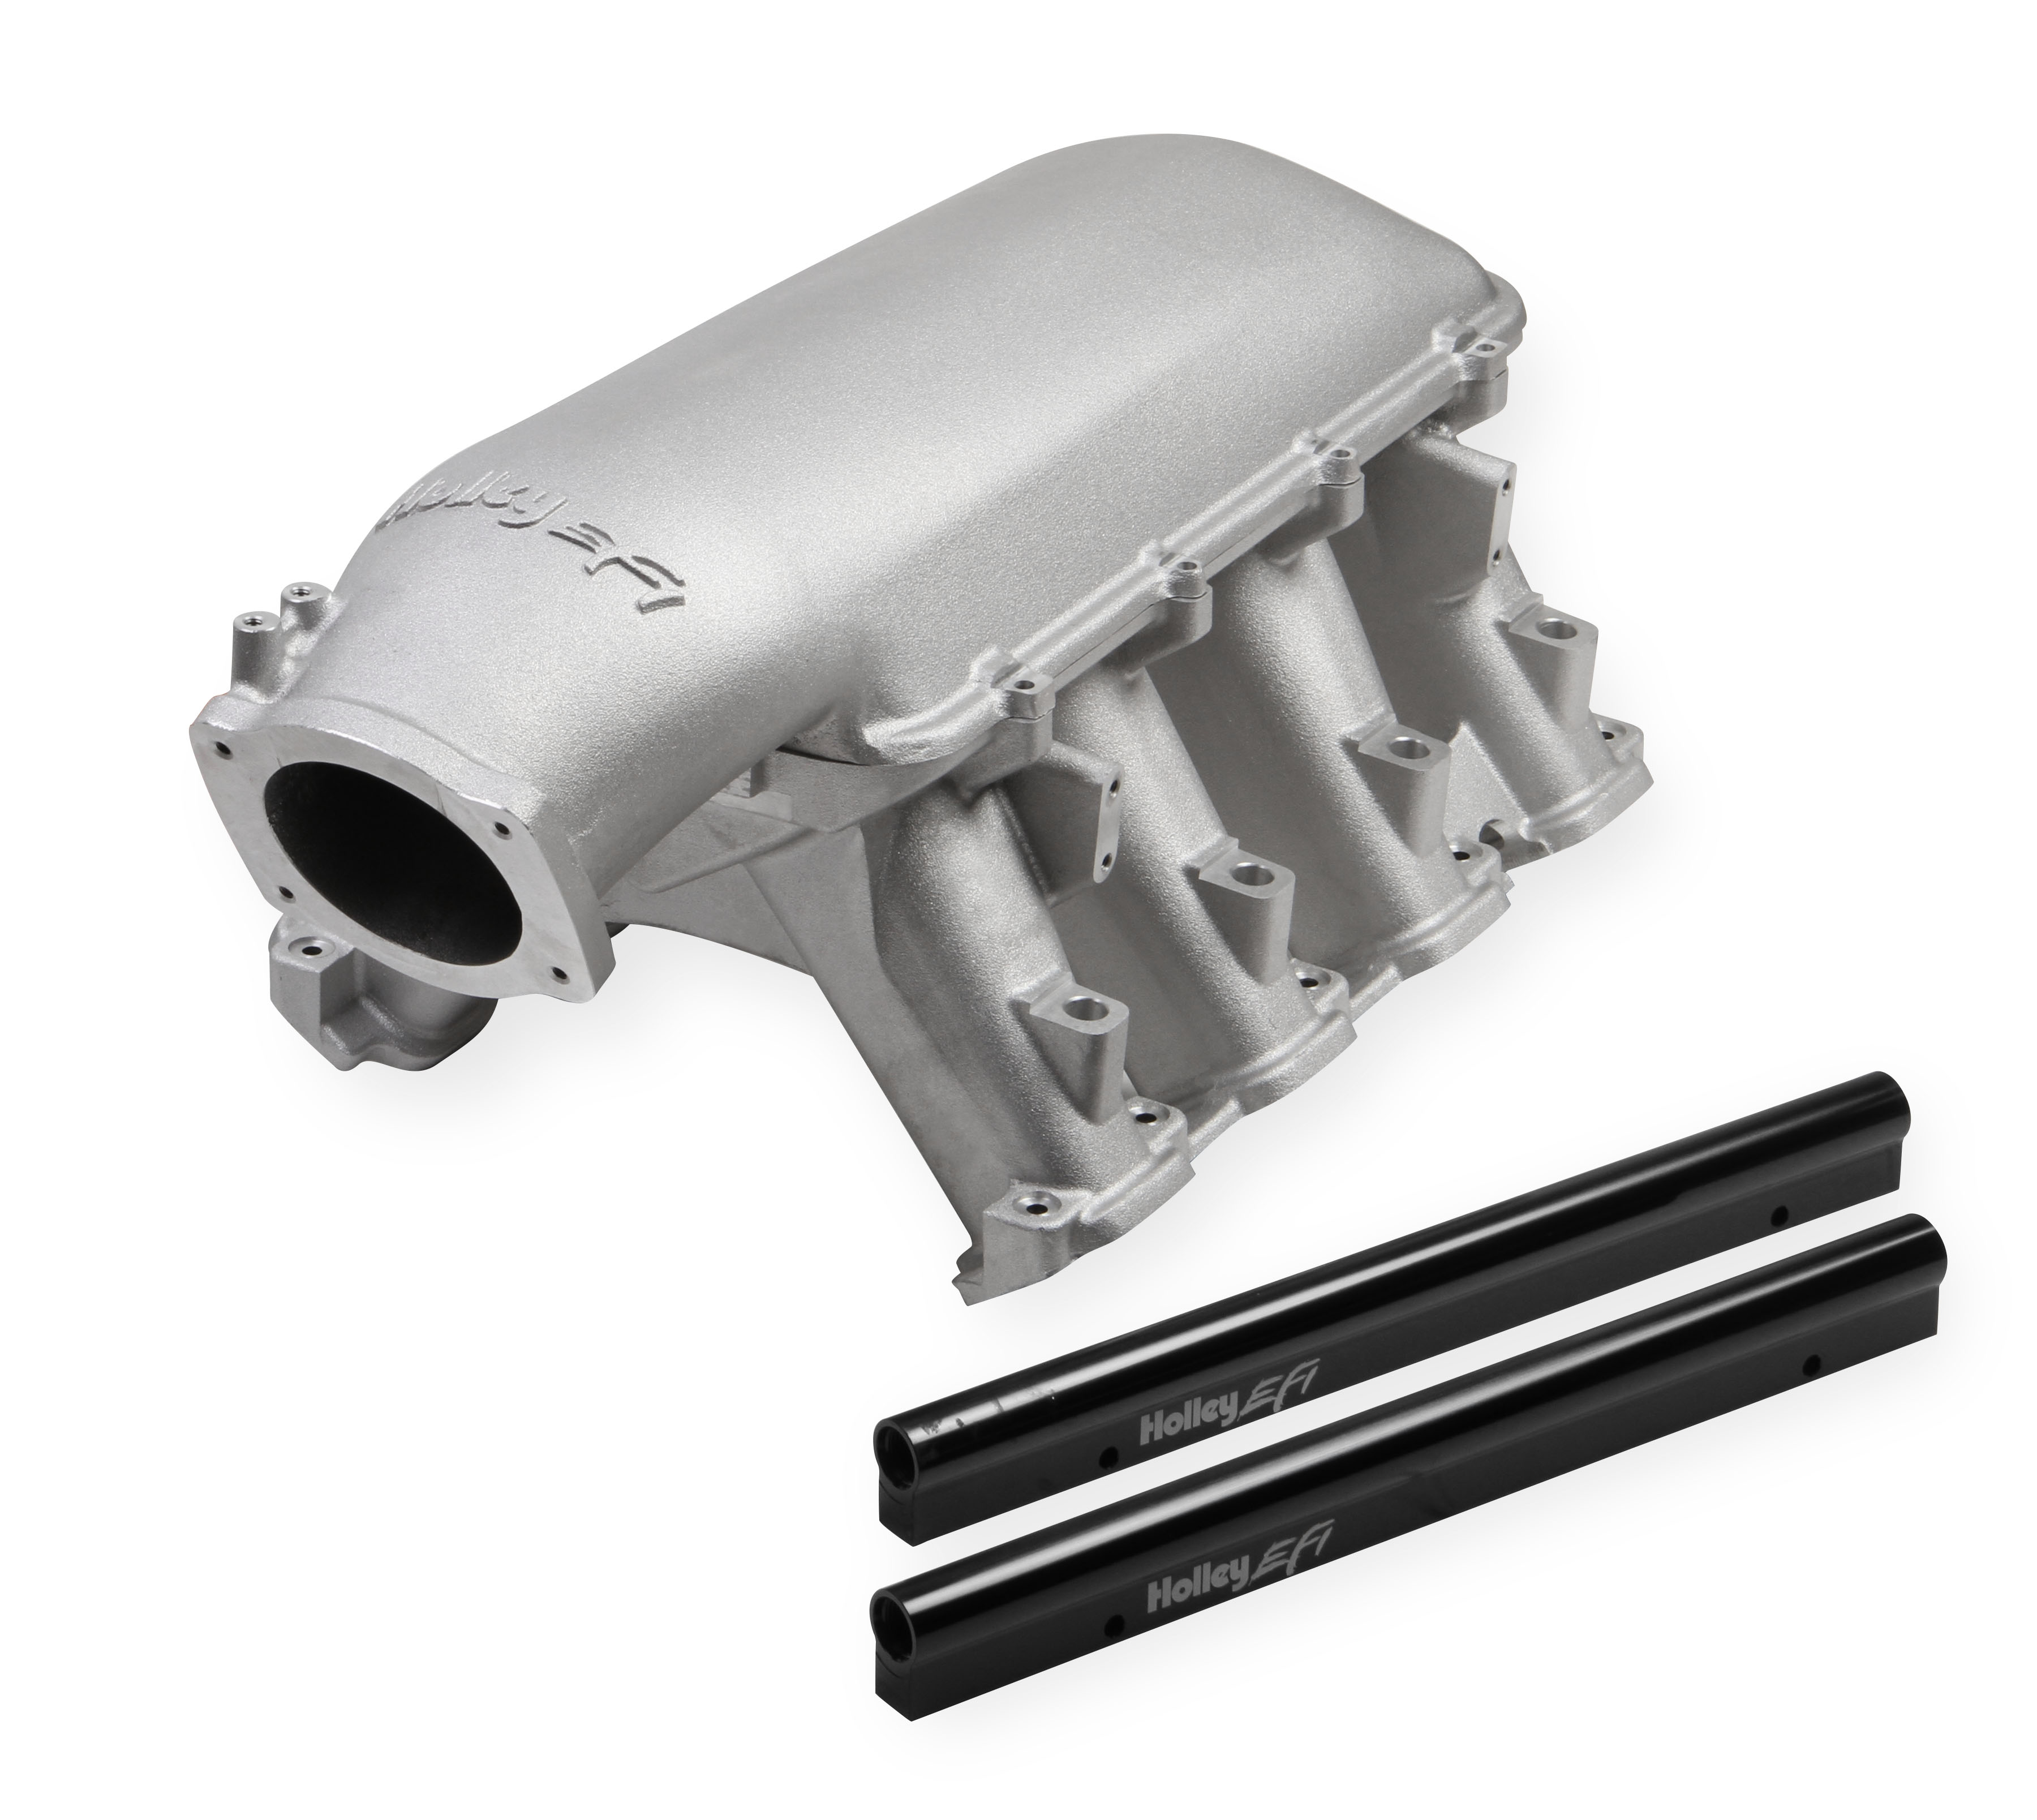 GM Gen V LT1 Holley Hi-Ram Intake Manifold 105mm w/Port EFI Provisions & Fuel Rails